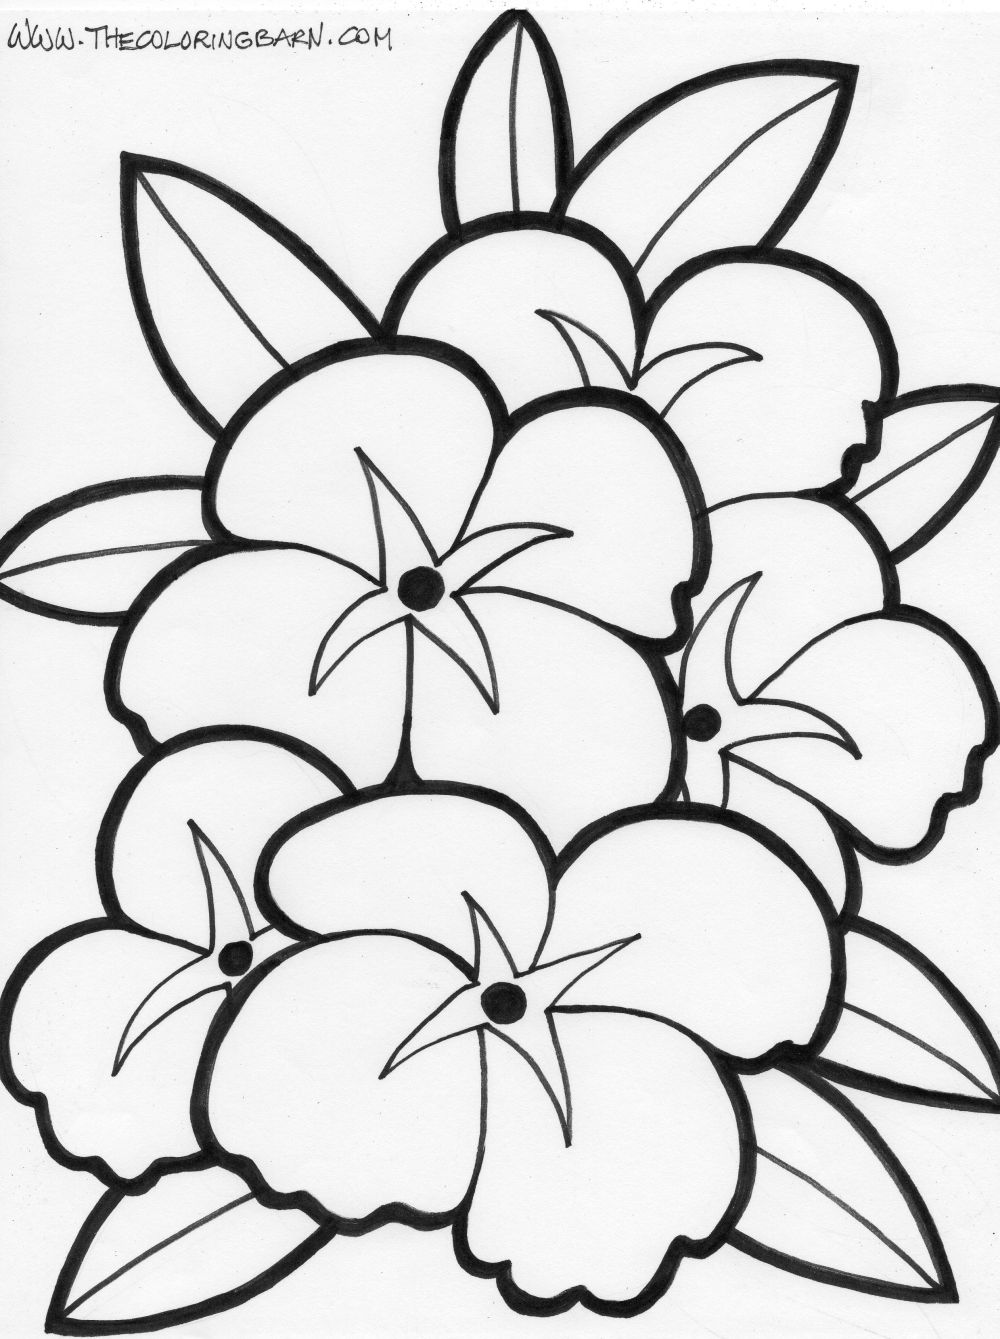 Appealing Coloring Pages Draw Easy Flowers Flower Template To Print Printable Simple Sheets Pictures Full